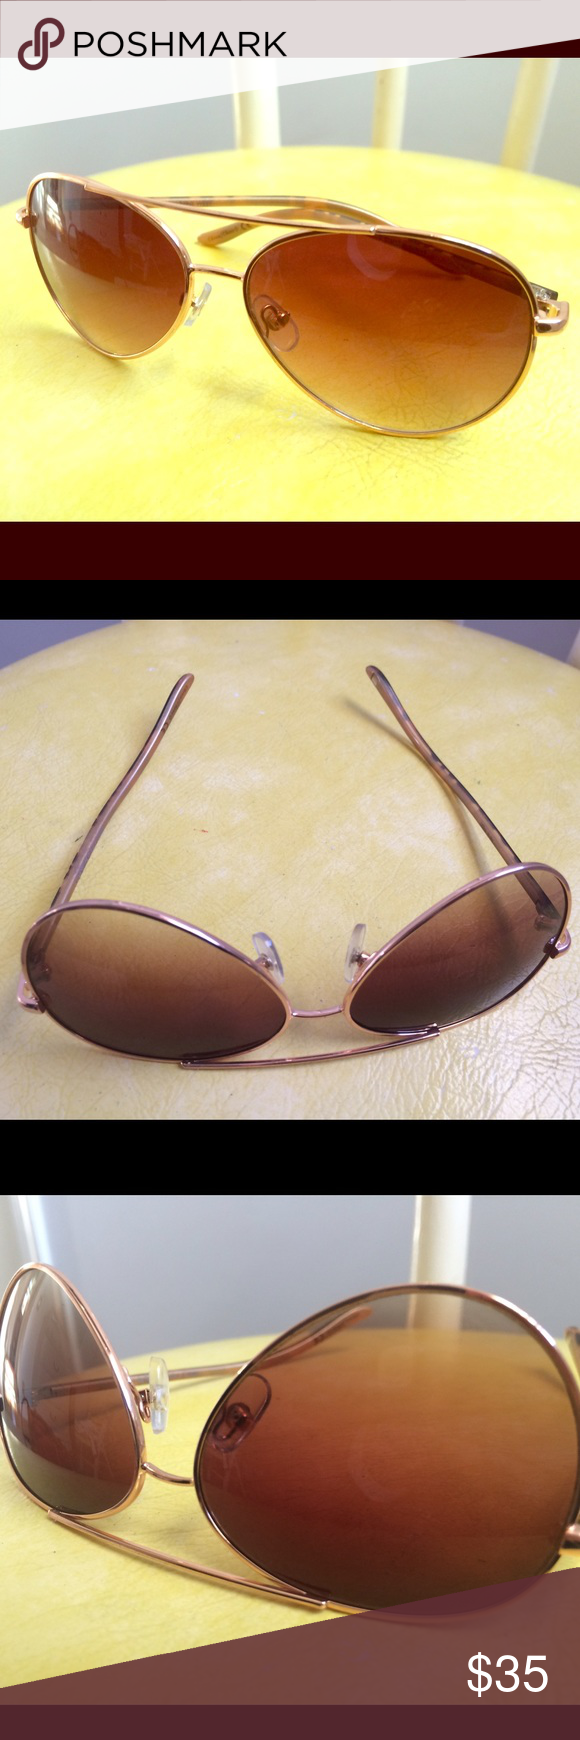 Brown/Tortoise Aviator Sunglasses - brand new! Flatters every face, perfect aviators. Brand new, from Macy's. Brand not labeled on sunglasses. I think Fossil, but not sure. Brown with tortoise coloring on sides. Sexy and chic sunglasses. Fast shipment 😎 Accessories Sunglasses